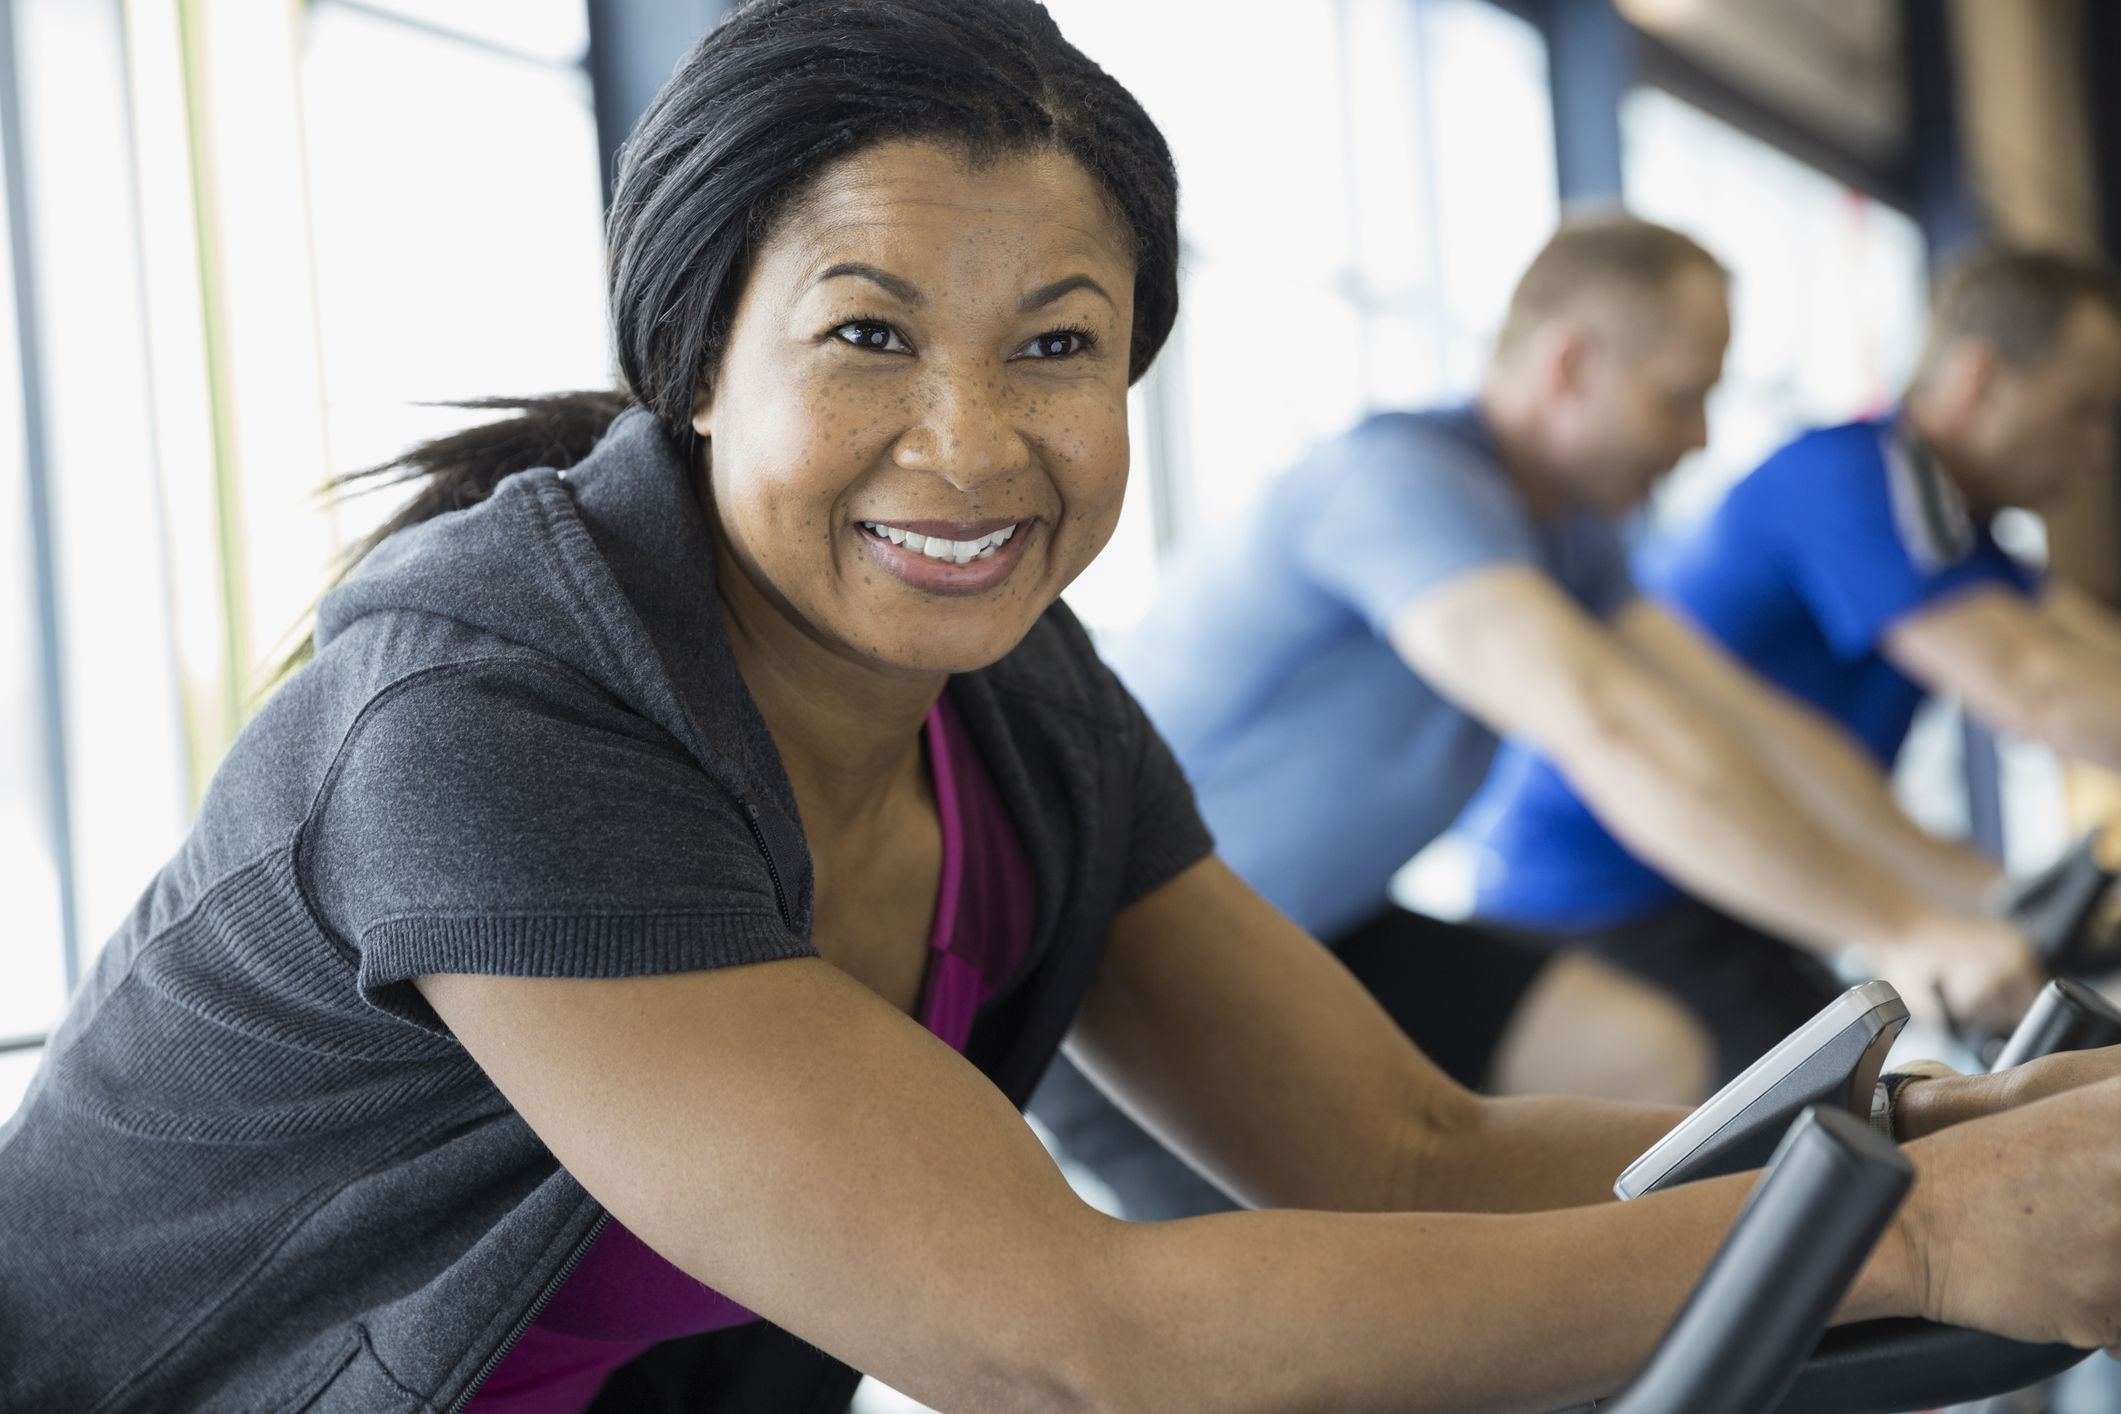 how much weight can i lose on a stationary bike